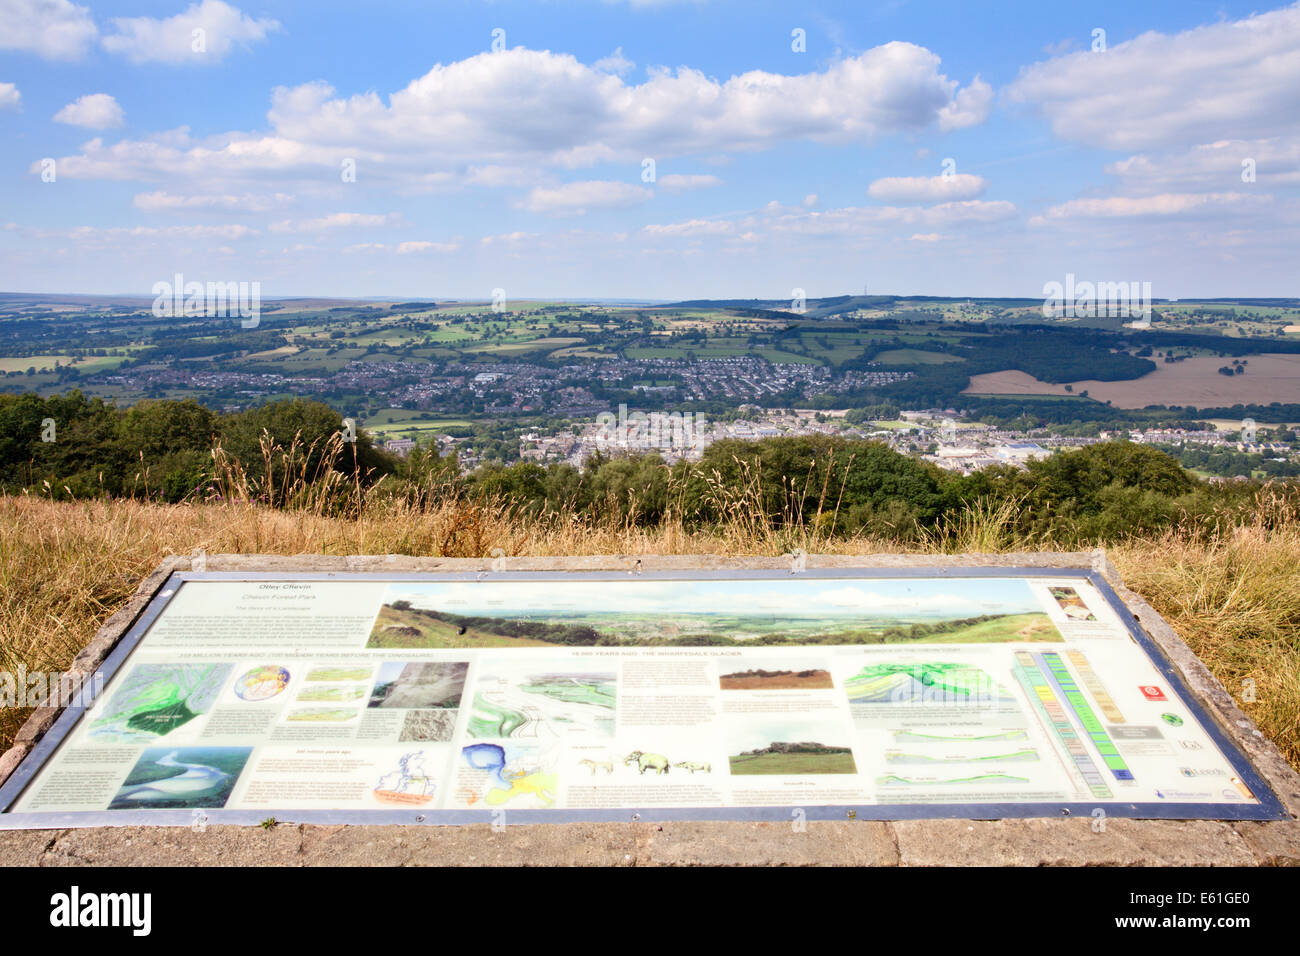 Otley Chevin Interpretation Board at the Surprise View The Chevin Otley West Yorkshire England - Stock Image